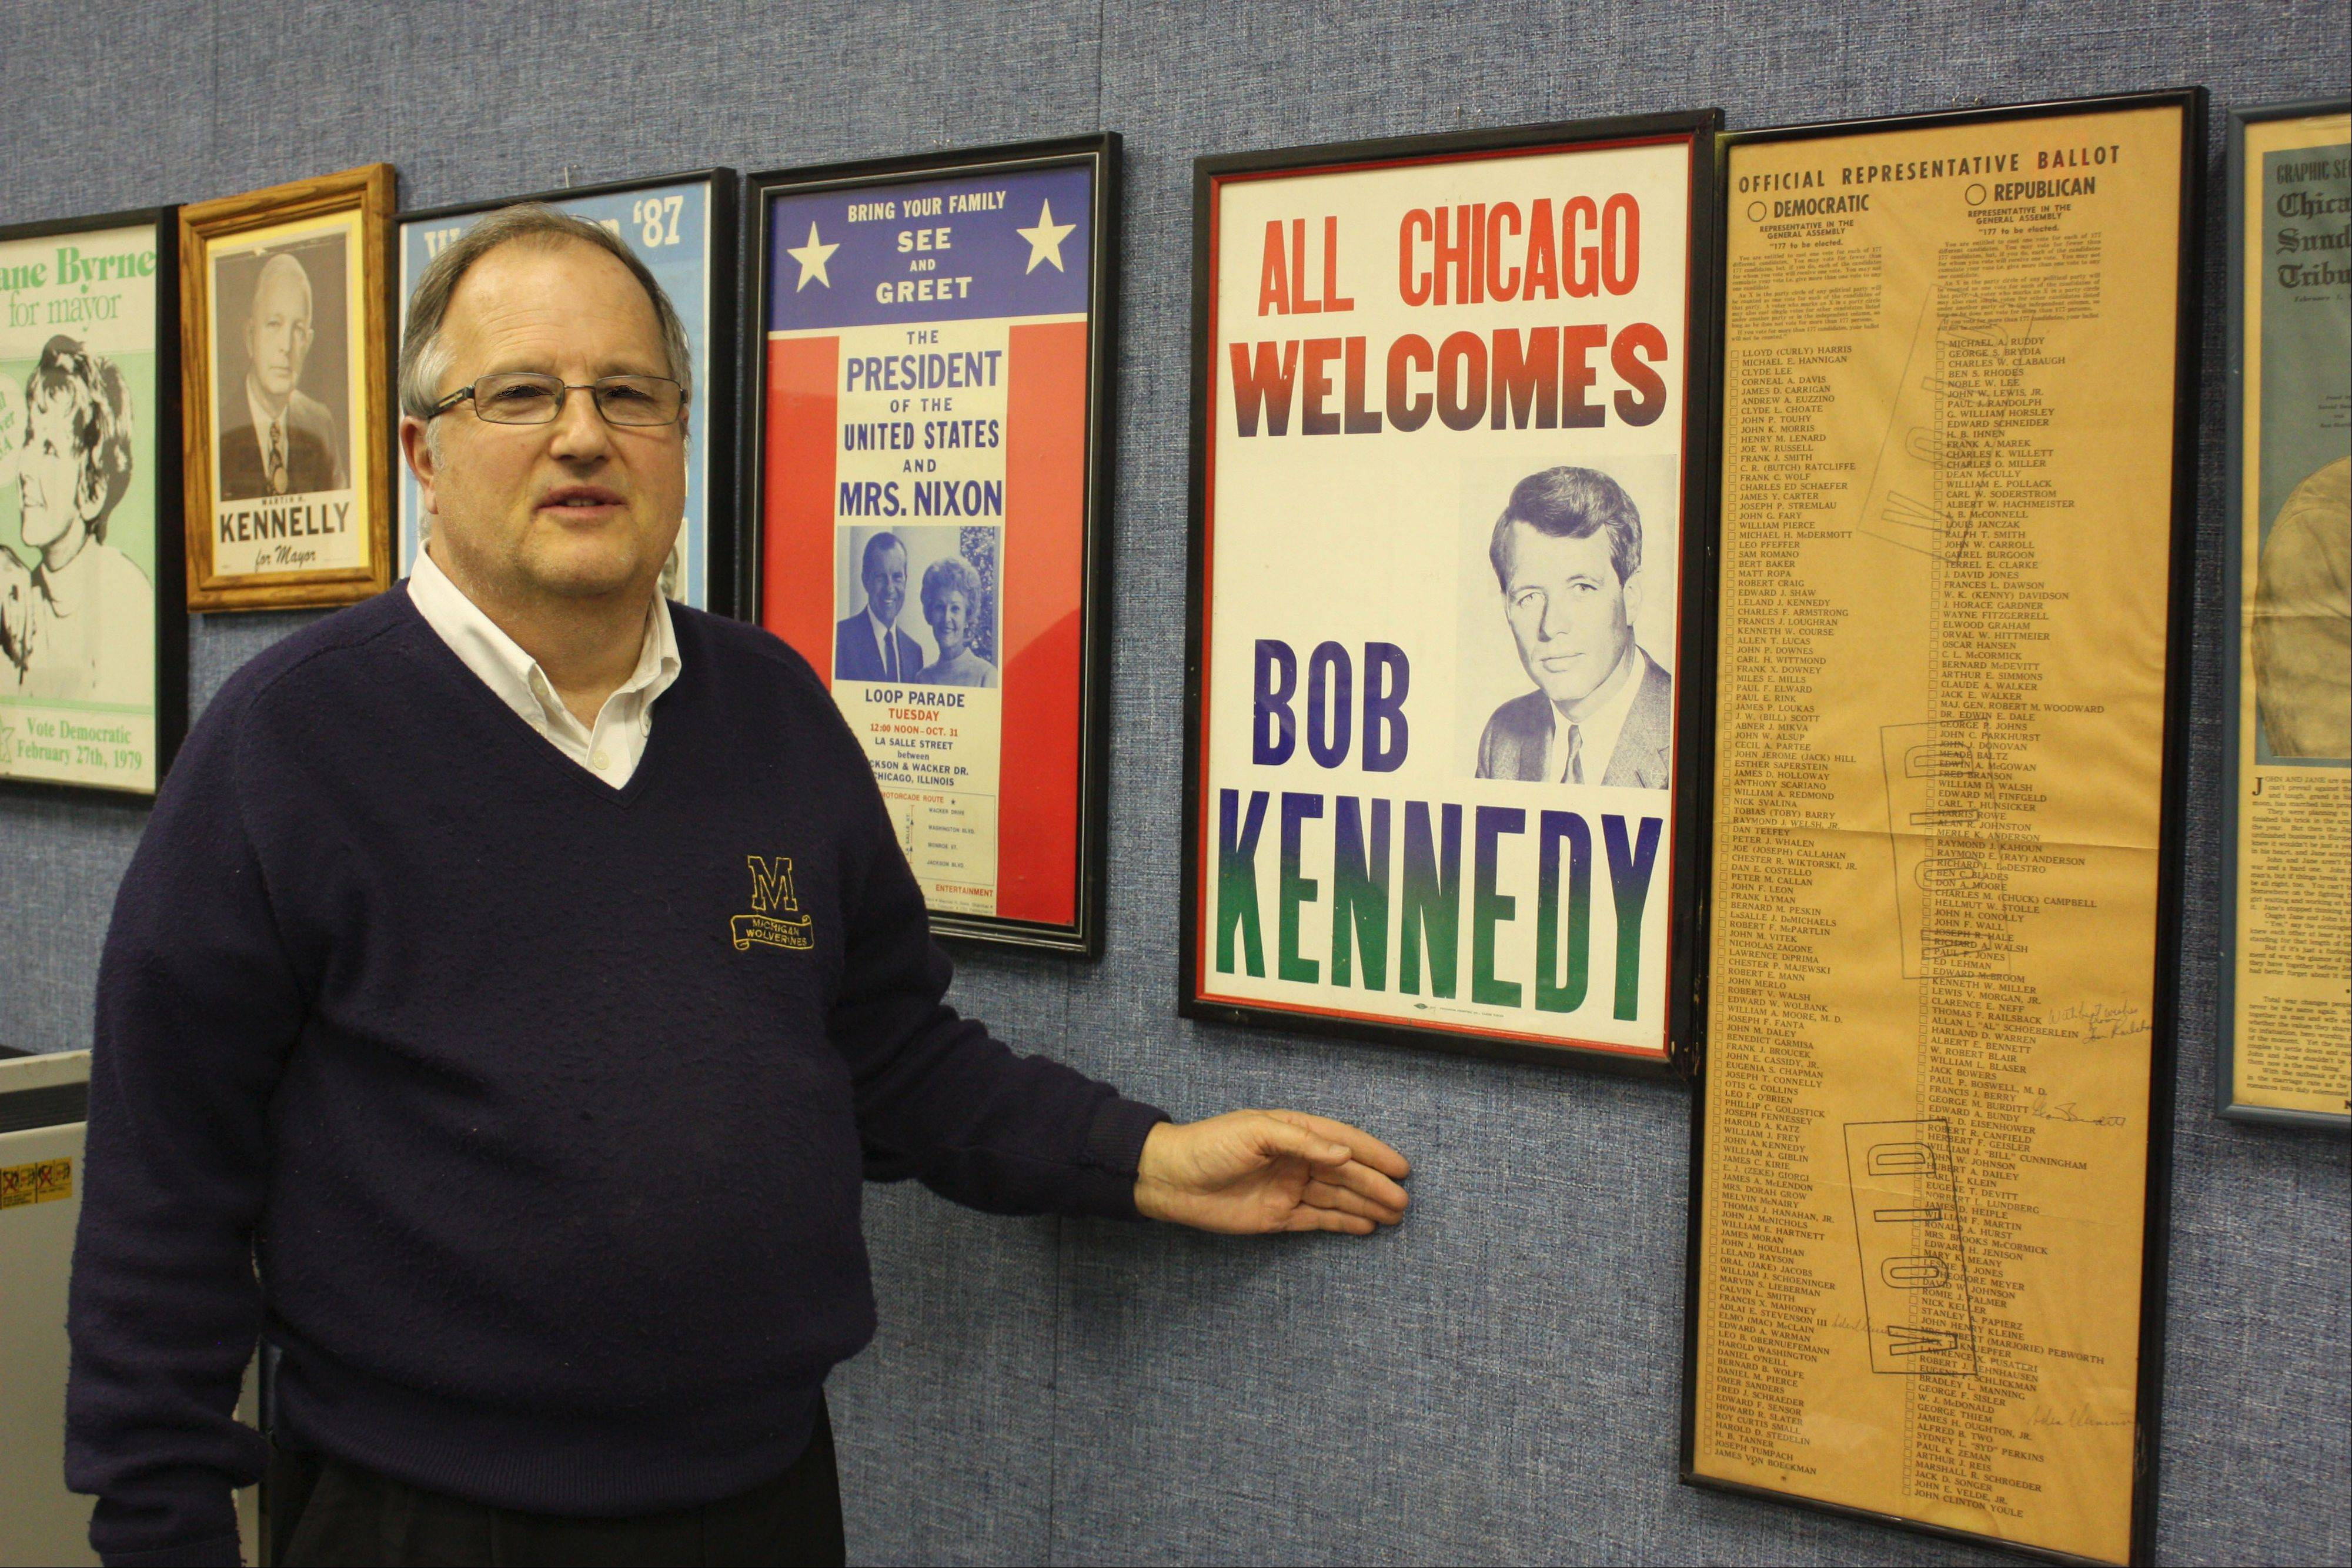 Lisle's John Huff has been collecting political memorabilia for more than 50 years. His eclectic collection includes campaign buttons, posters, matchbook covers, jewelry, autographed photos and even some bobbleheads.